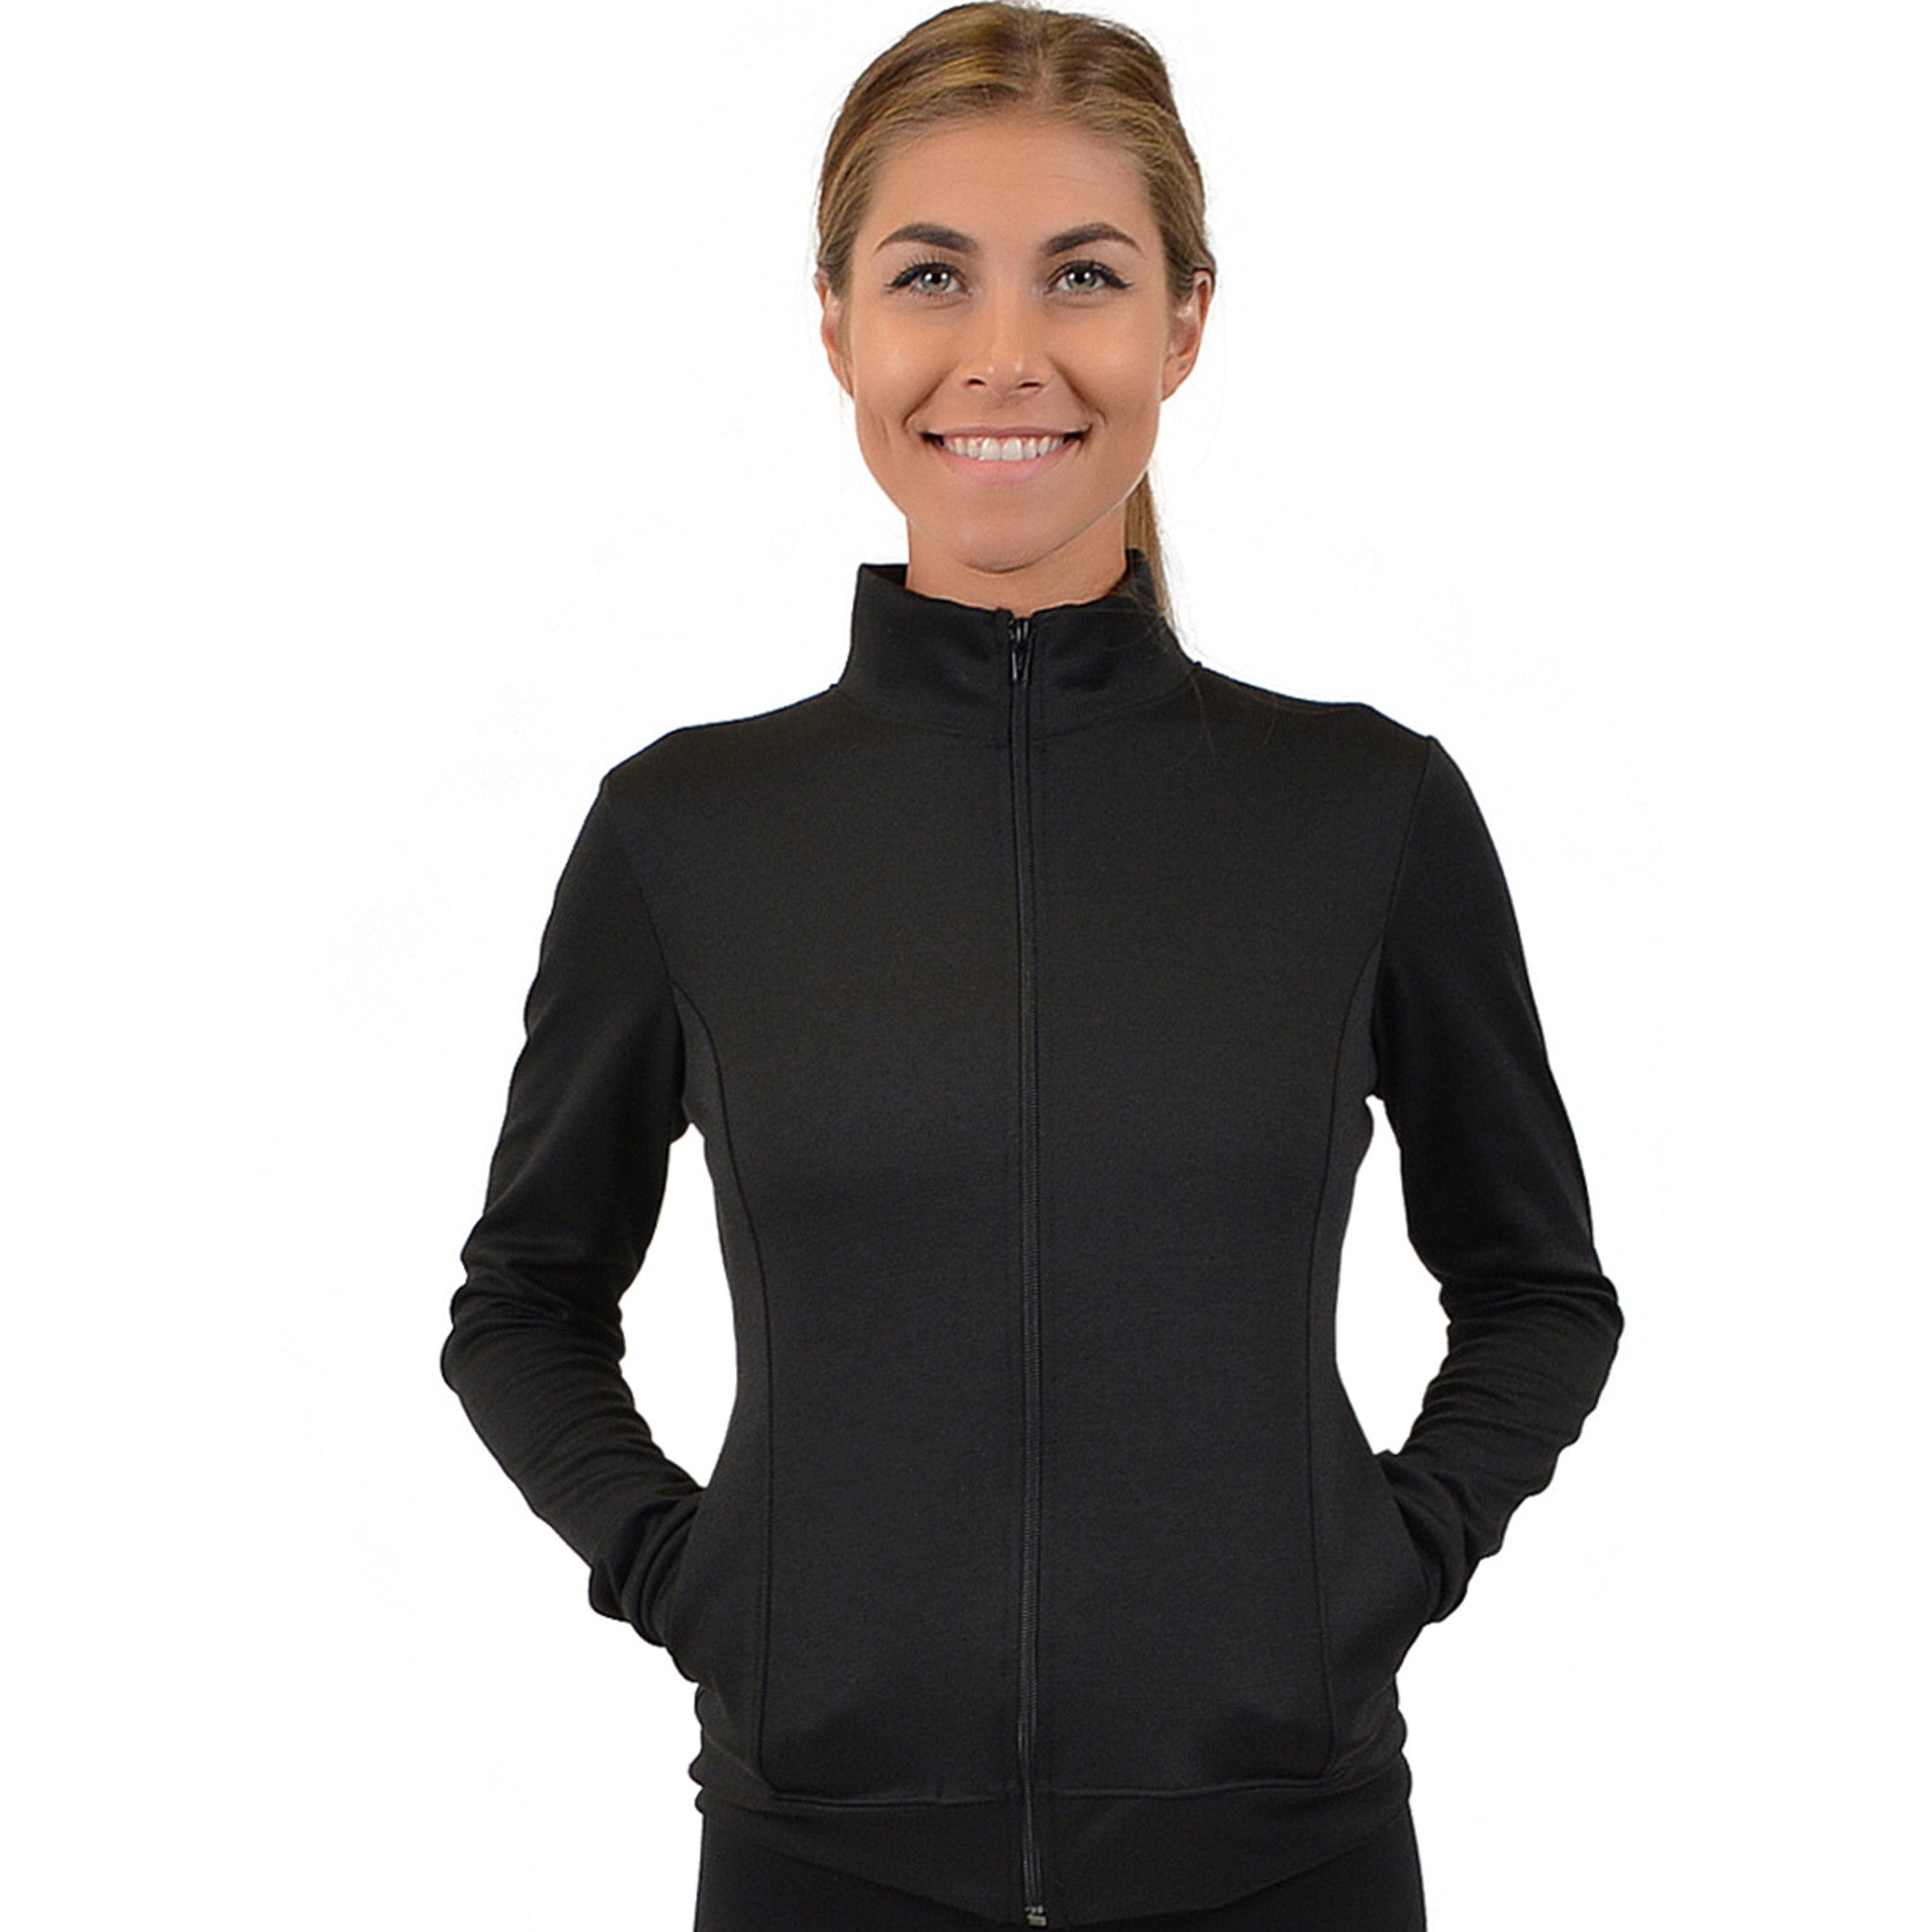 ACTIVE Viscose/Nylon/Spandex Cadet Warm Up Jacket Sizer Kit